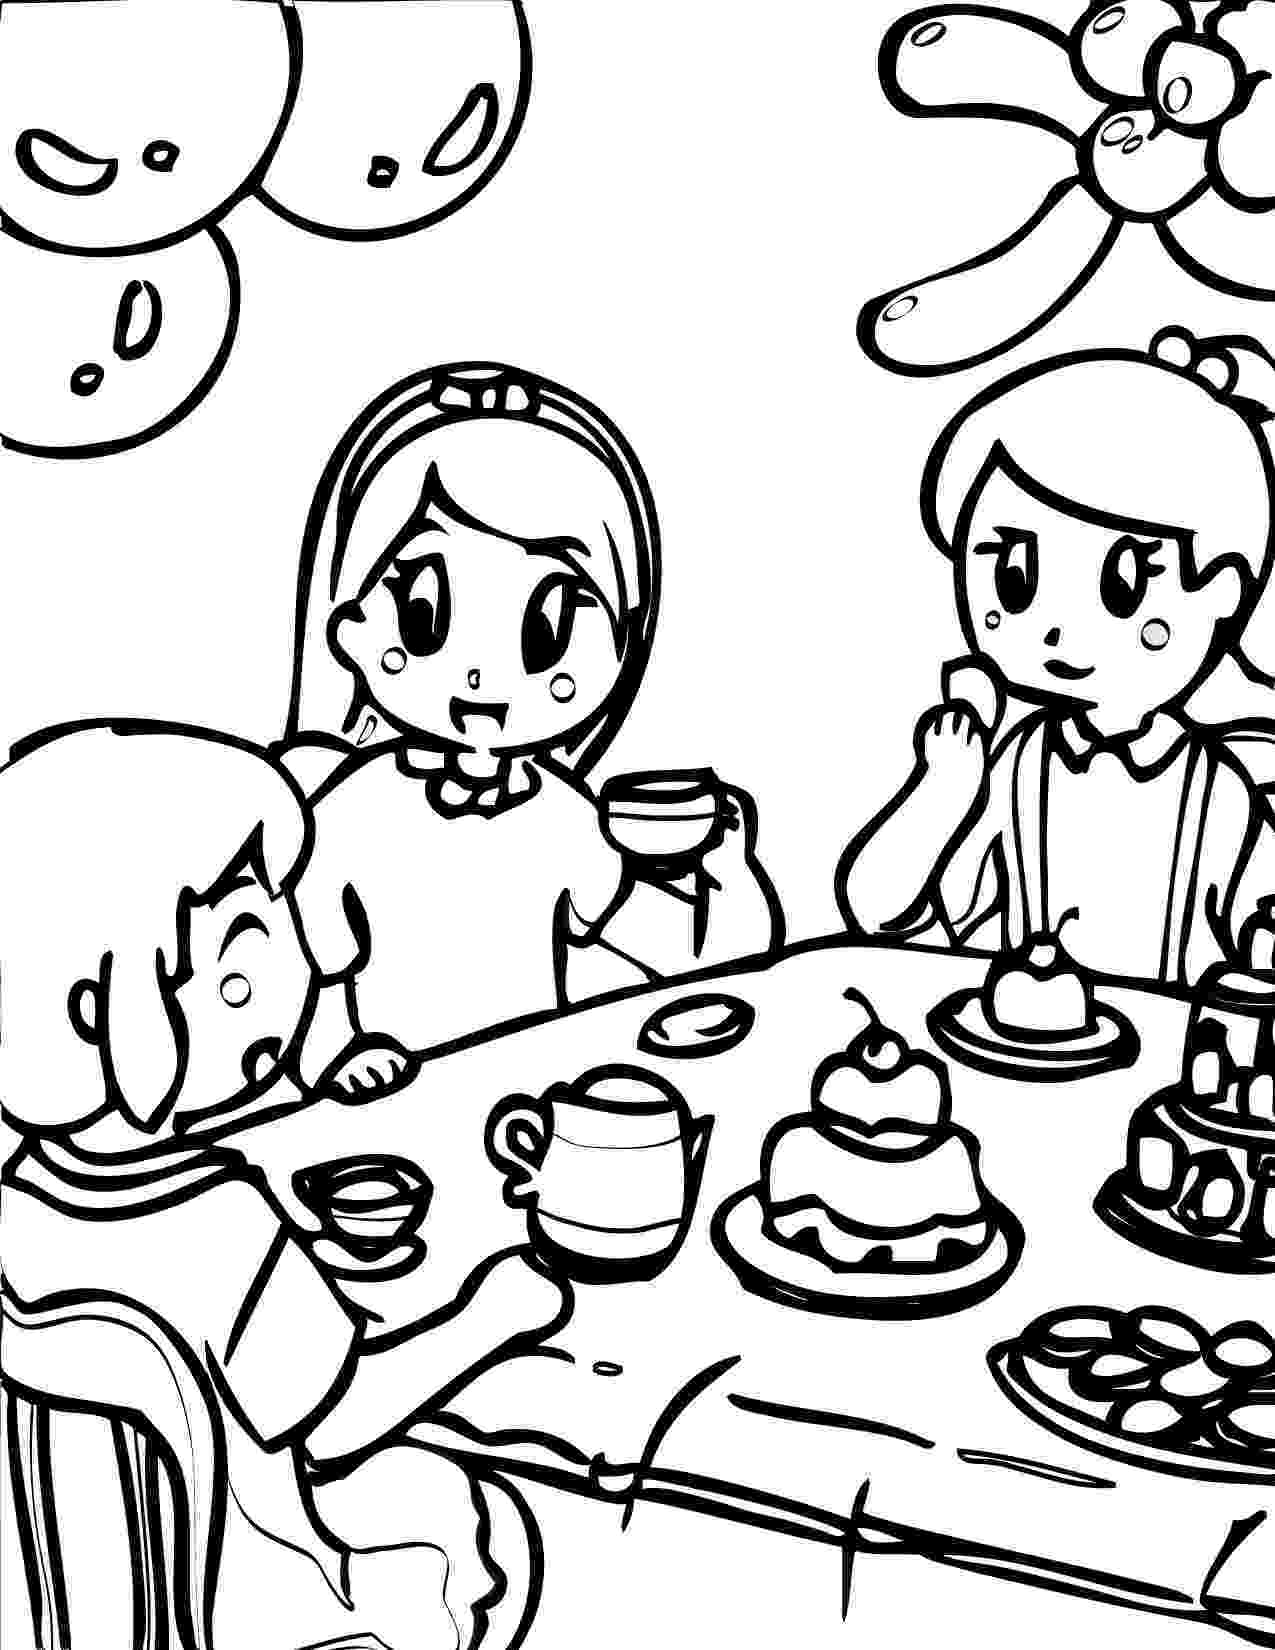 tea party coloring pages american girl tea party ideas kids tea party birthday party coloring pages tea